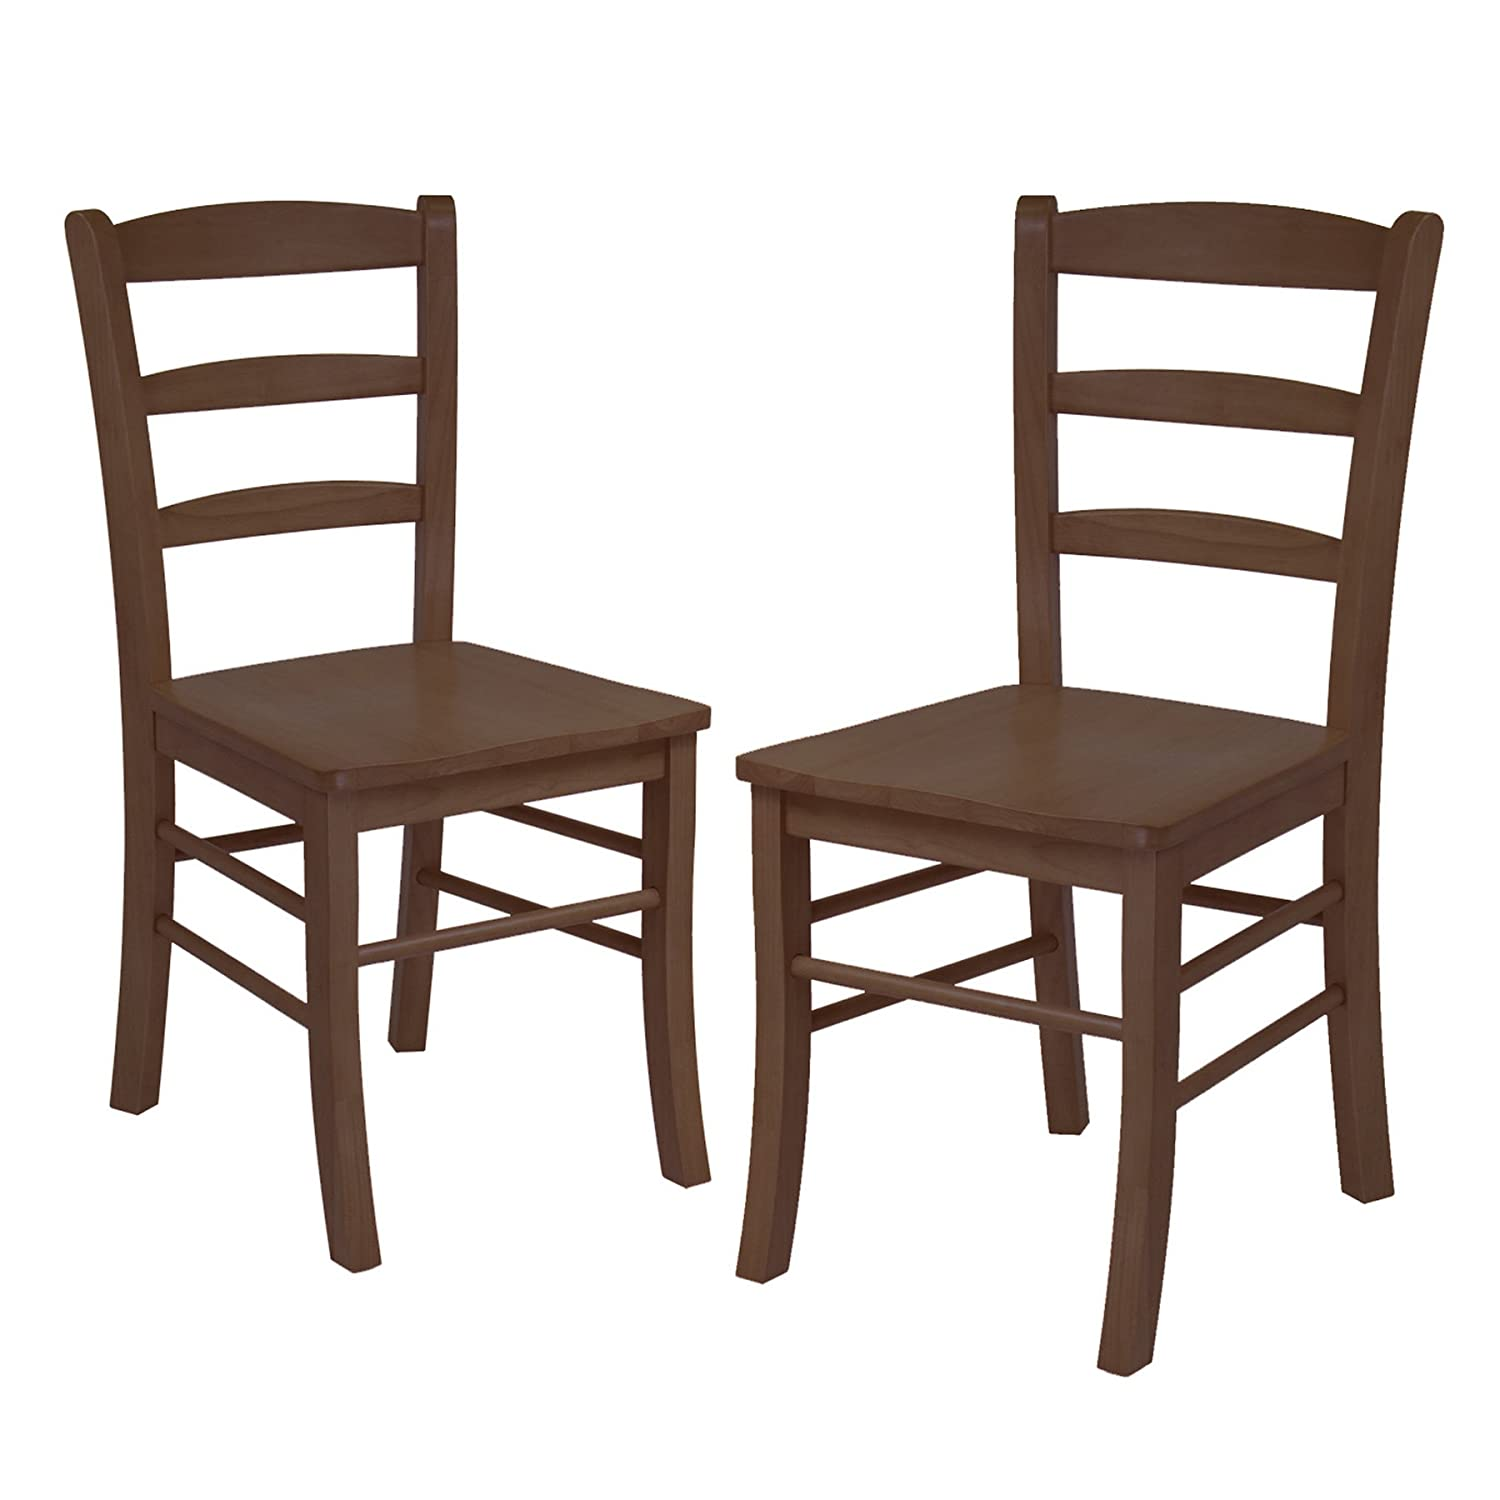 Amazon.com: Winsome Wood Ladder Back Chair, Light Oak, Set of 2 ...